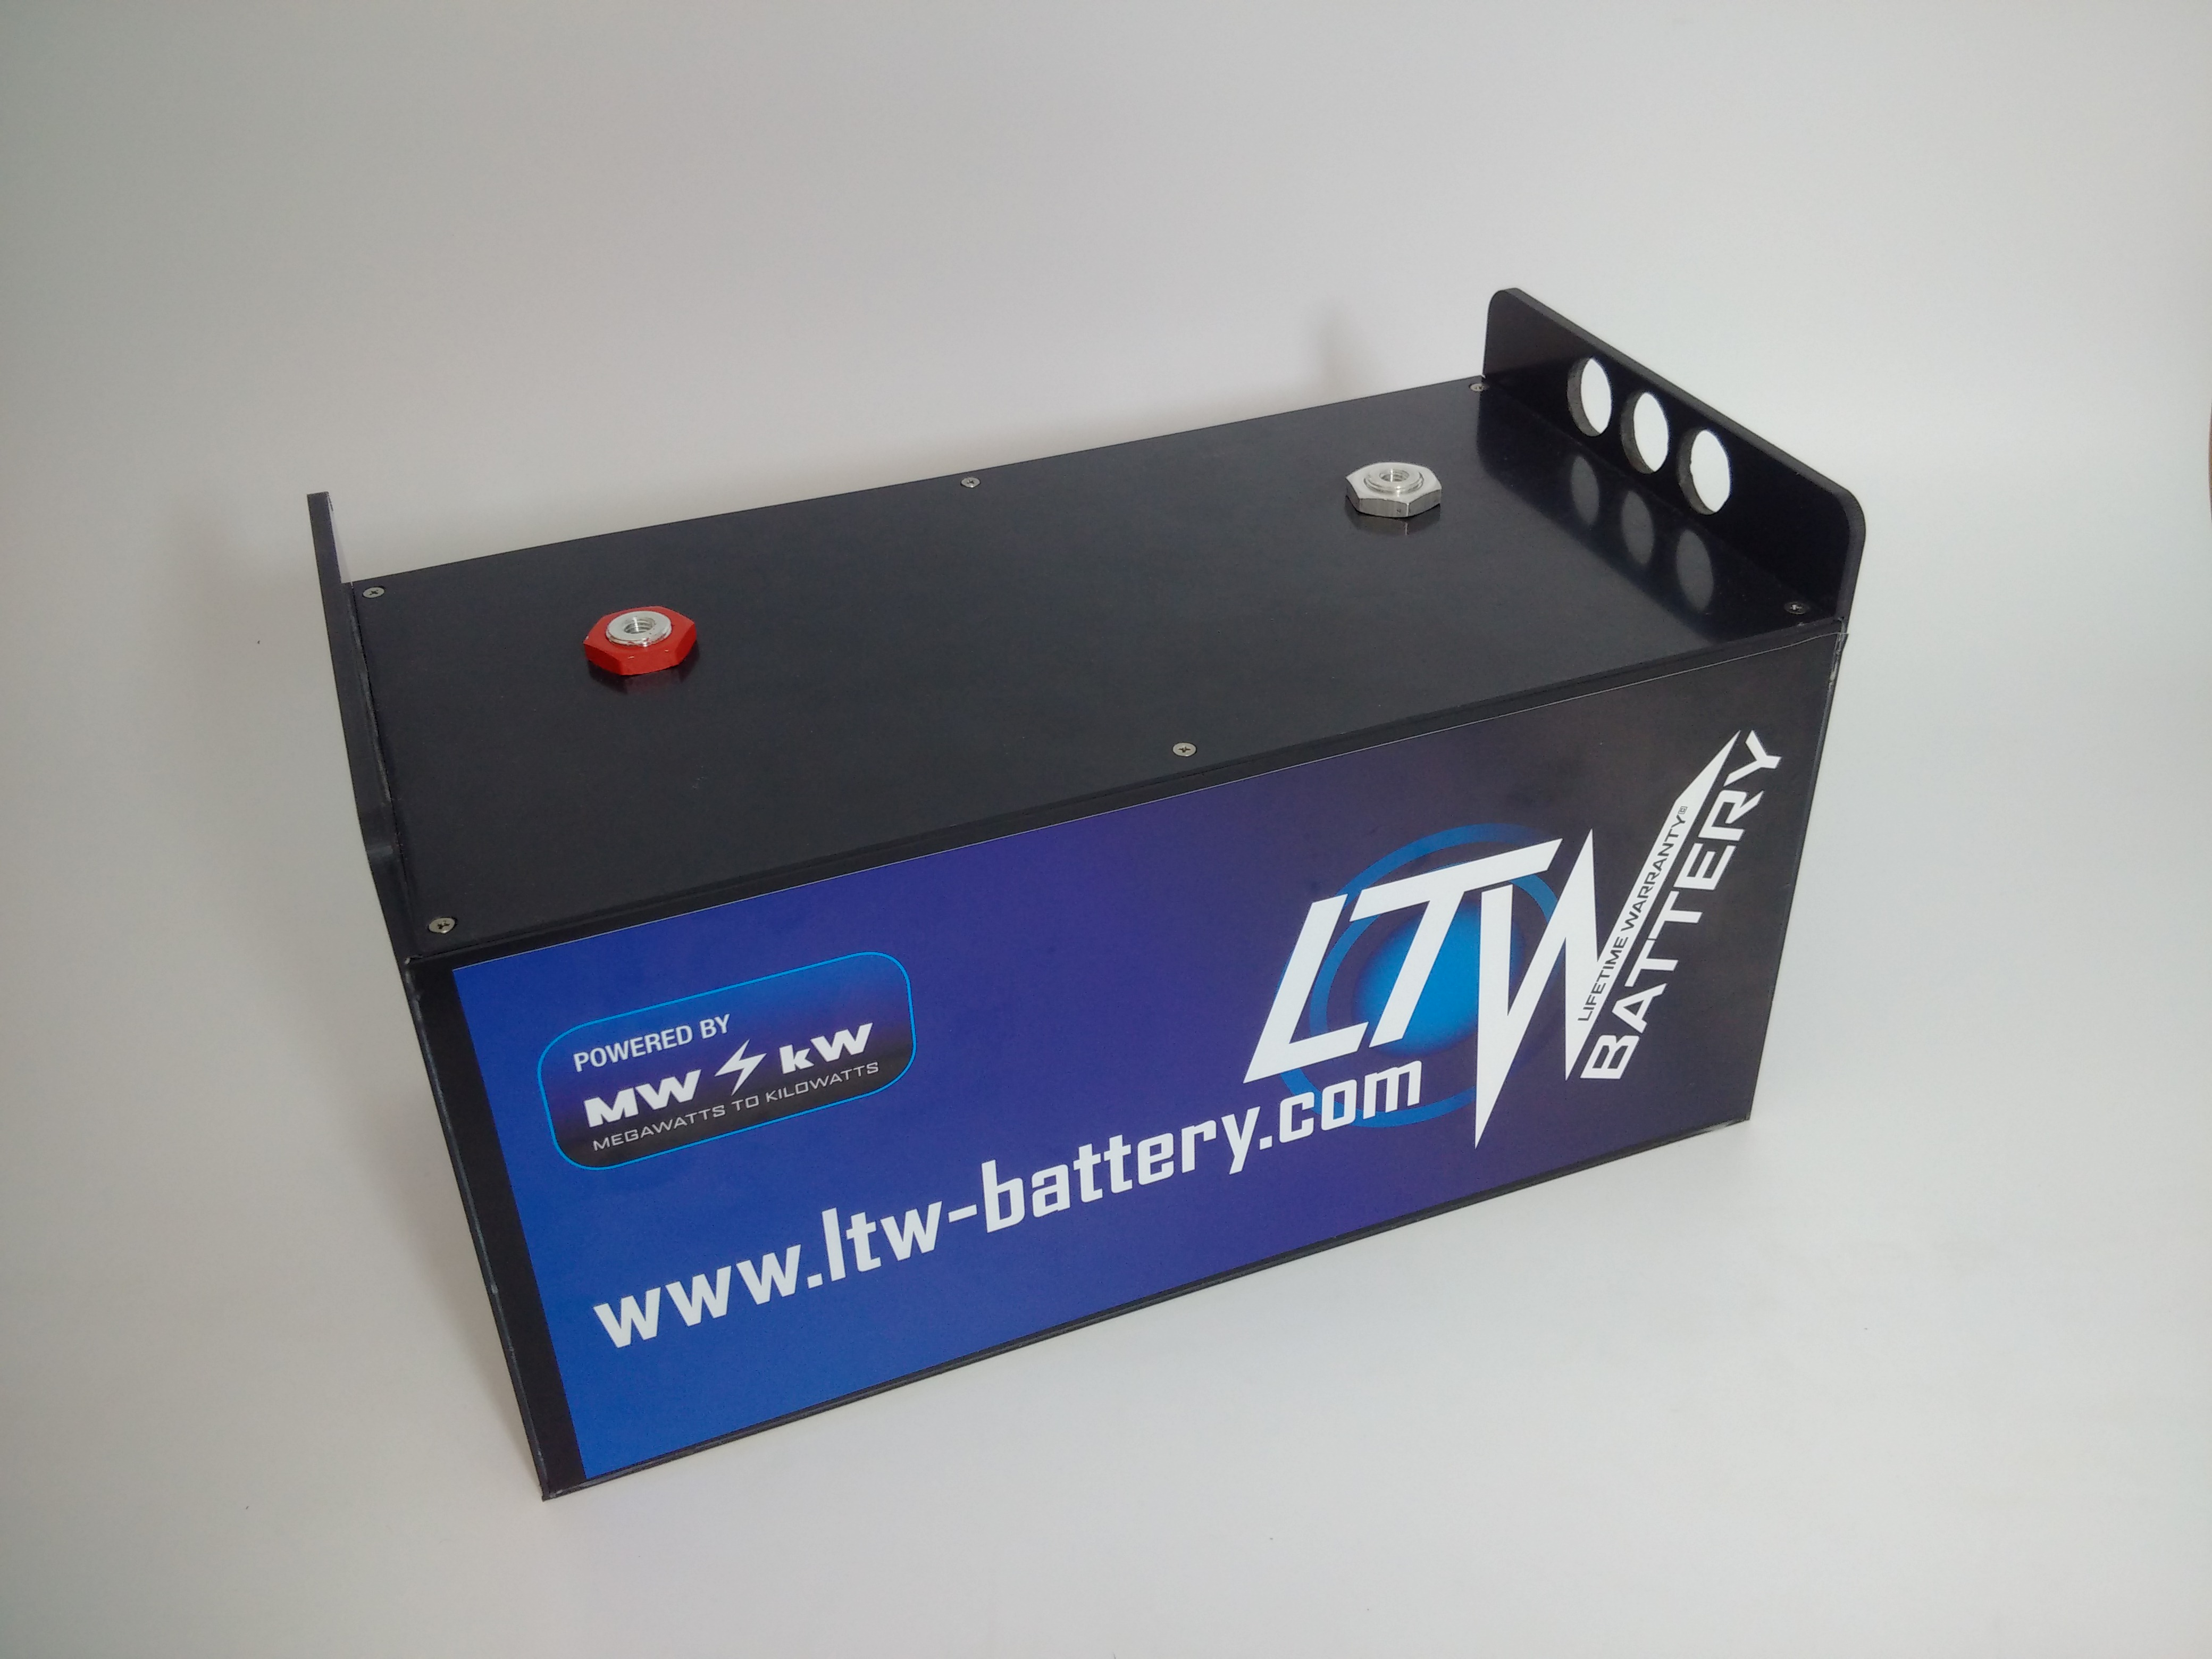 13.7.2017 - Updated version of LTW battery box